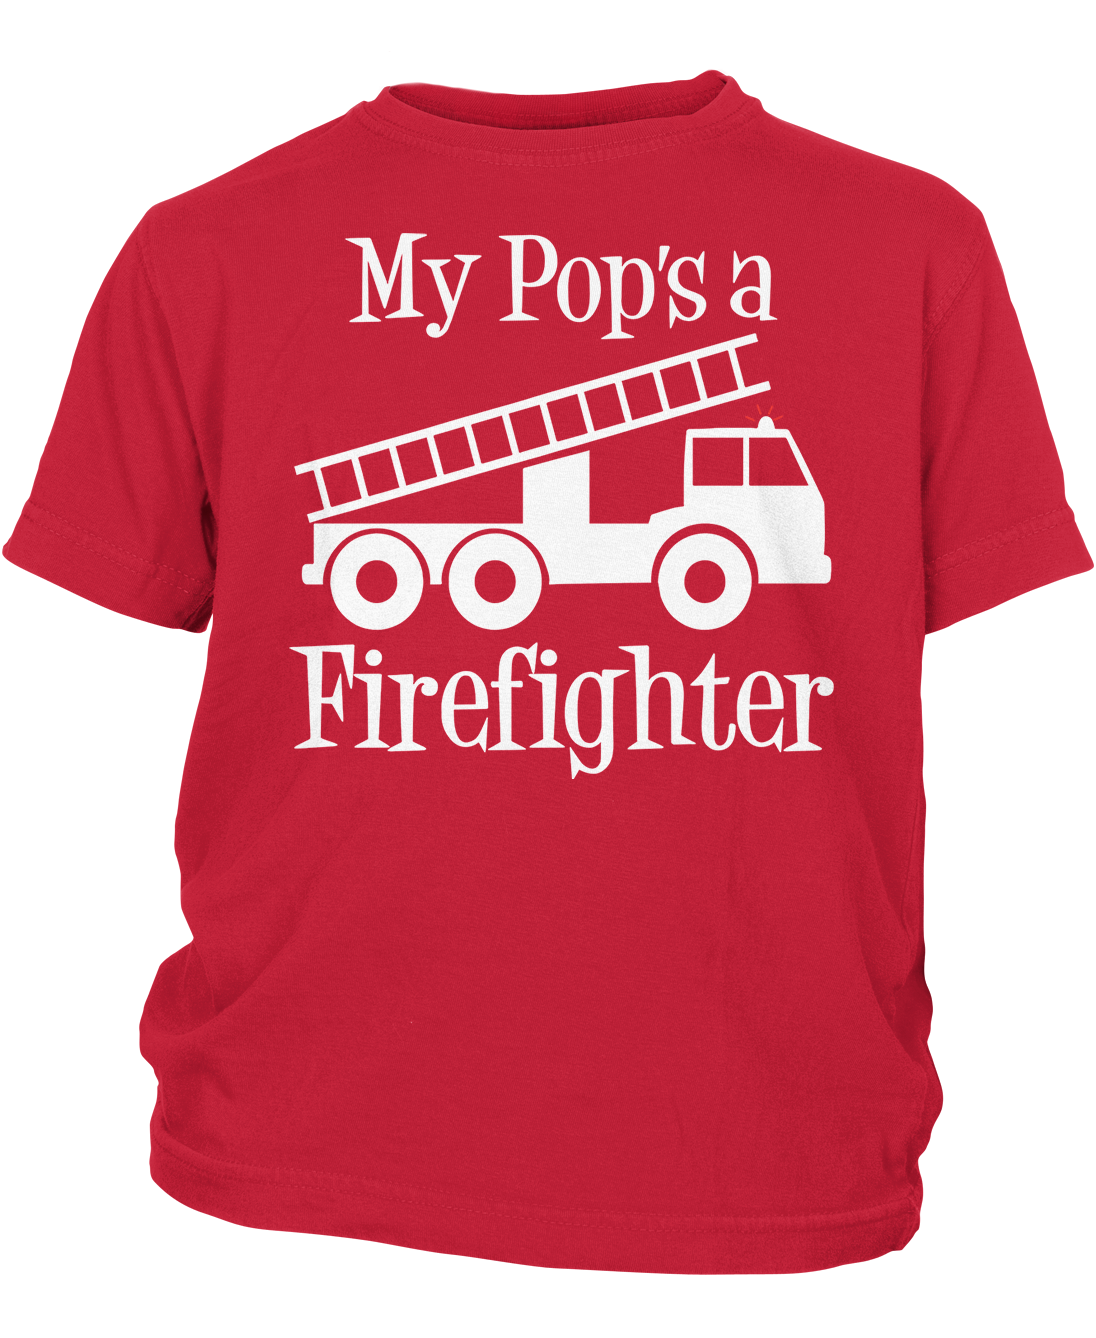 73fed54b My Pop's a Firefighter - Children's T-Shirt | Products | T shirt ...